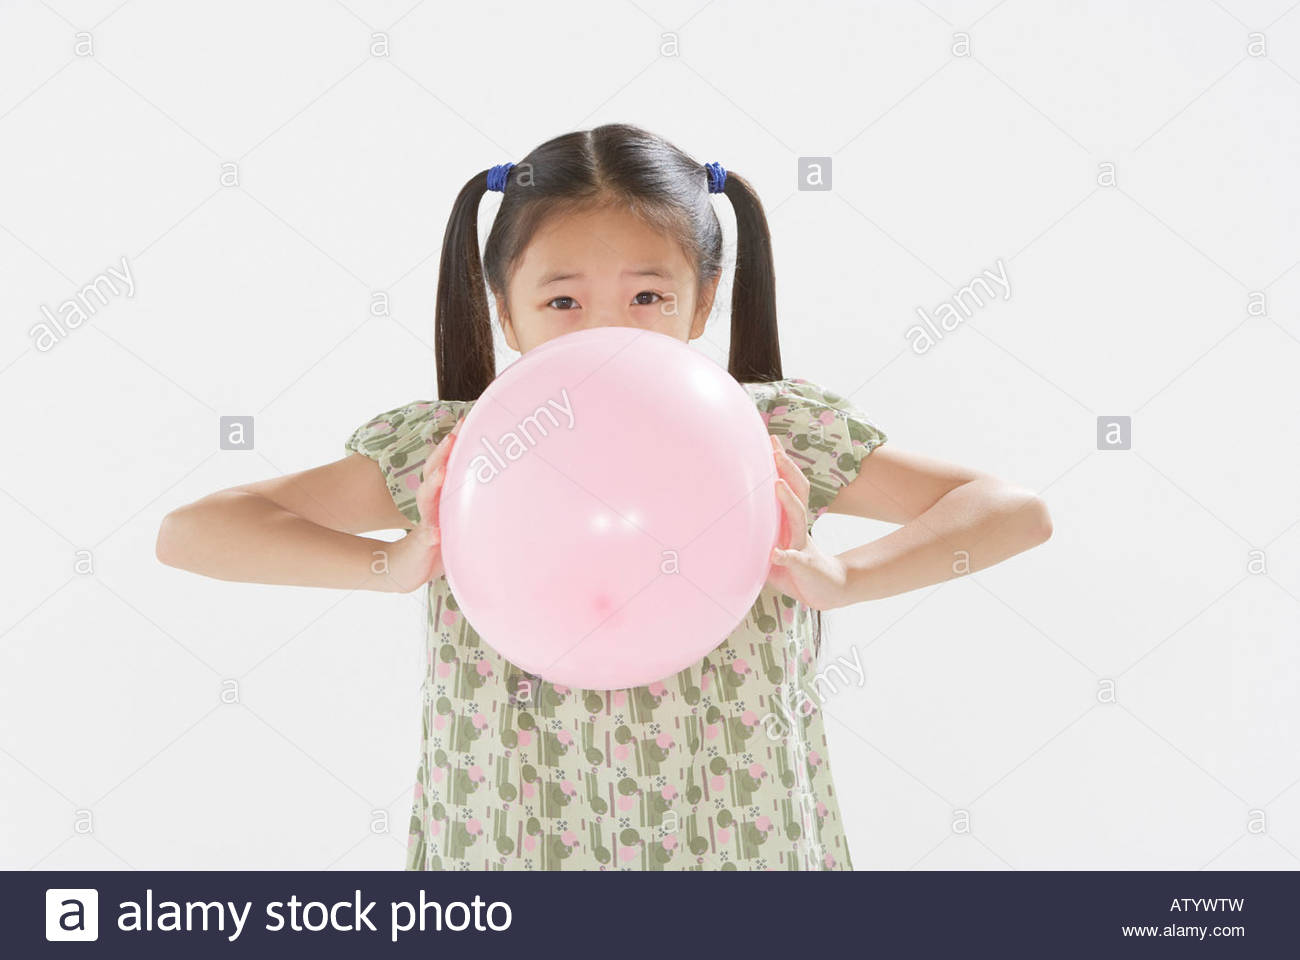 Young girl blowing up balloon indoors - Stock Image